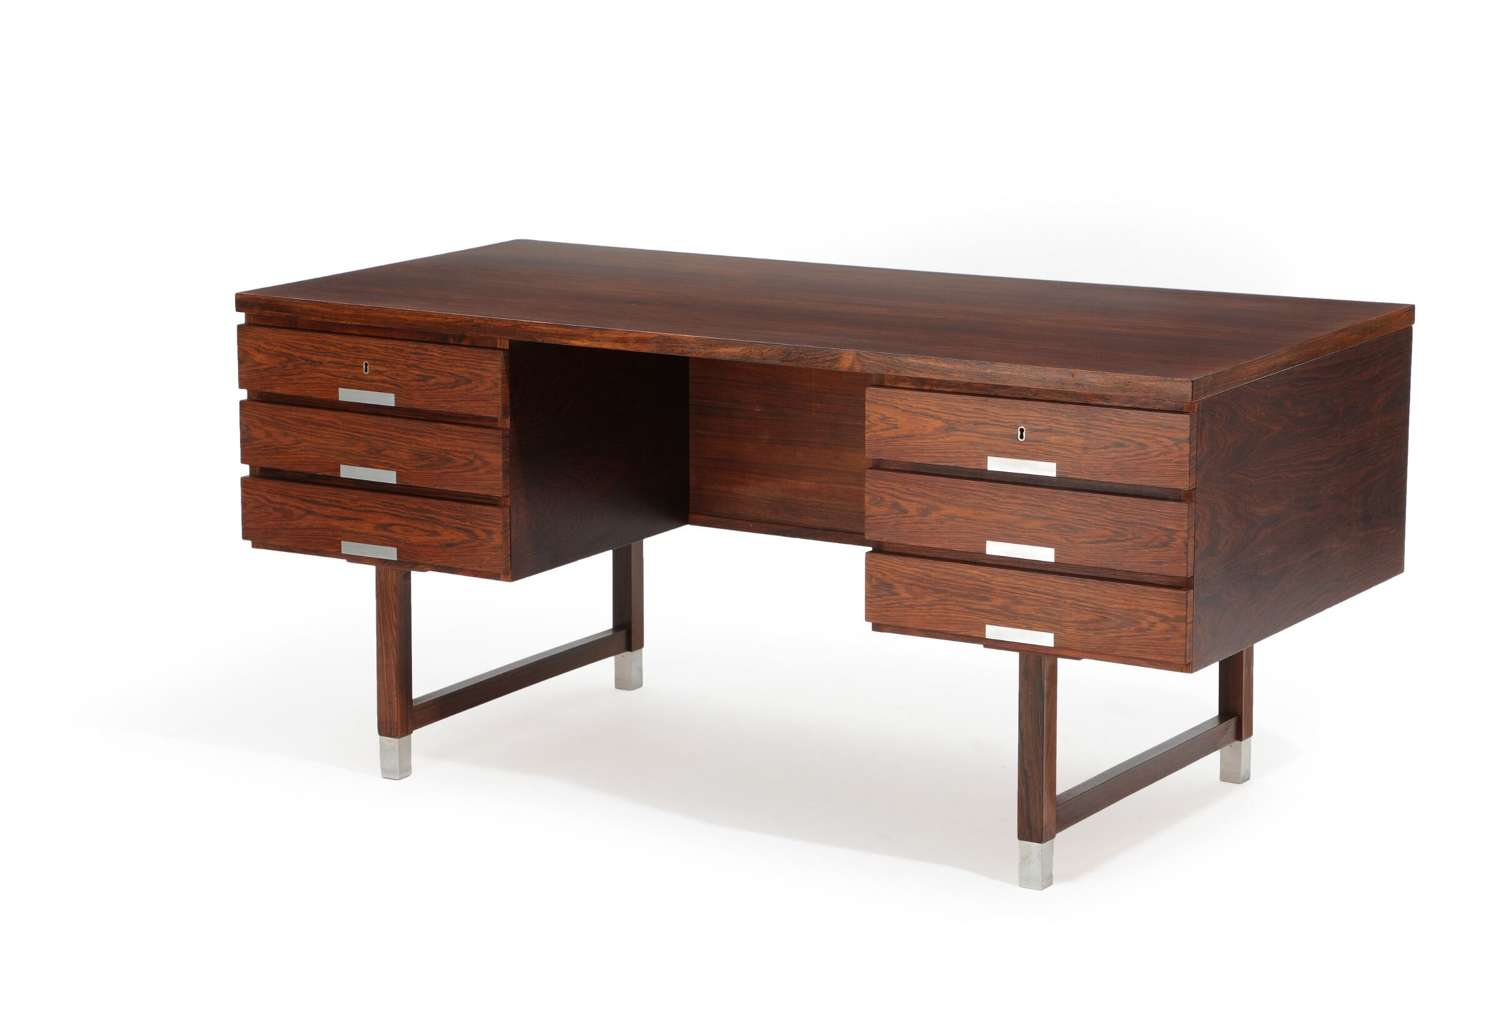 1960s Danish Rosewood and Aluminium Desk by Kai Kristensen